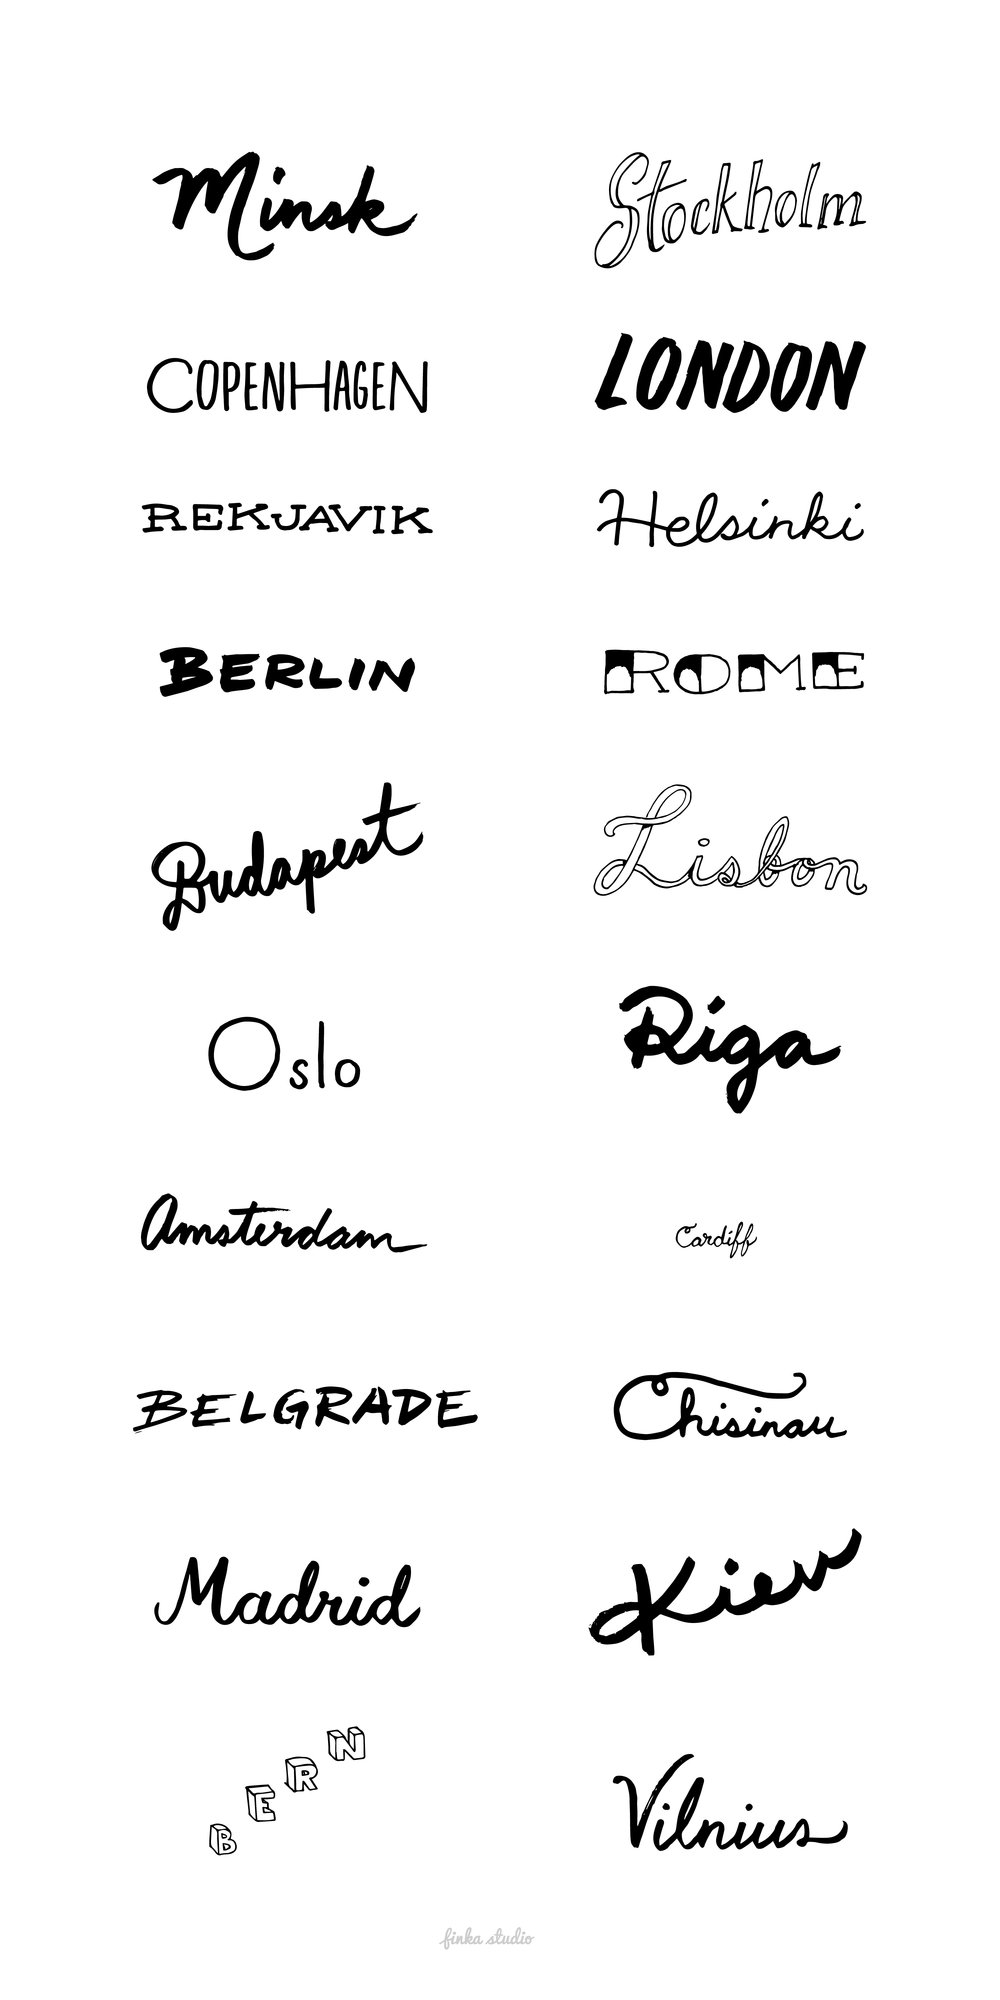 Finka_Studio_Hand_Lettered_Cities.jpg